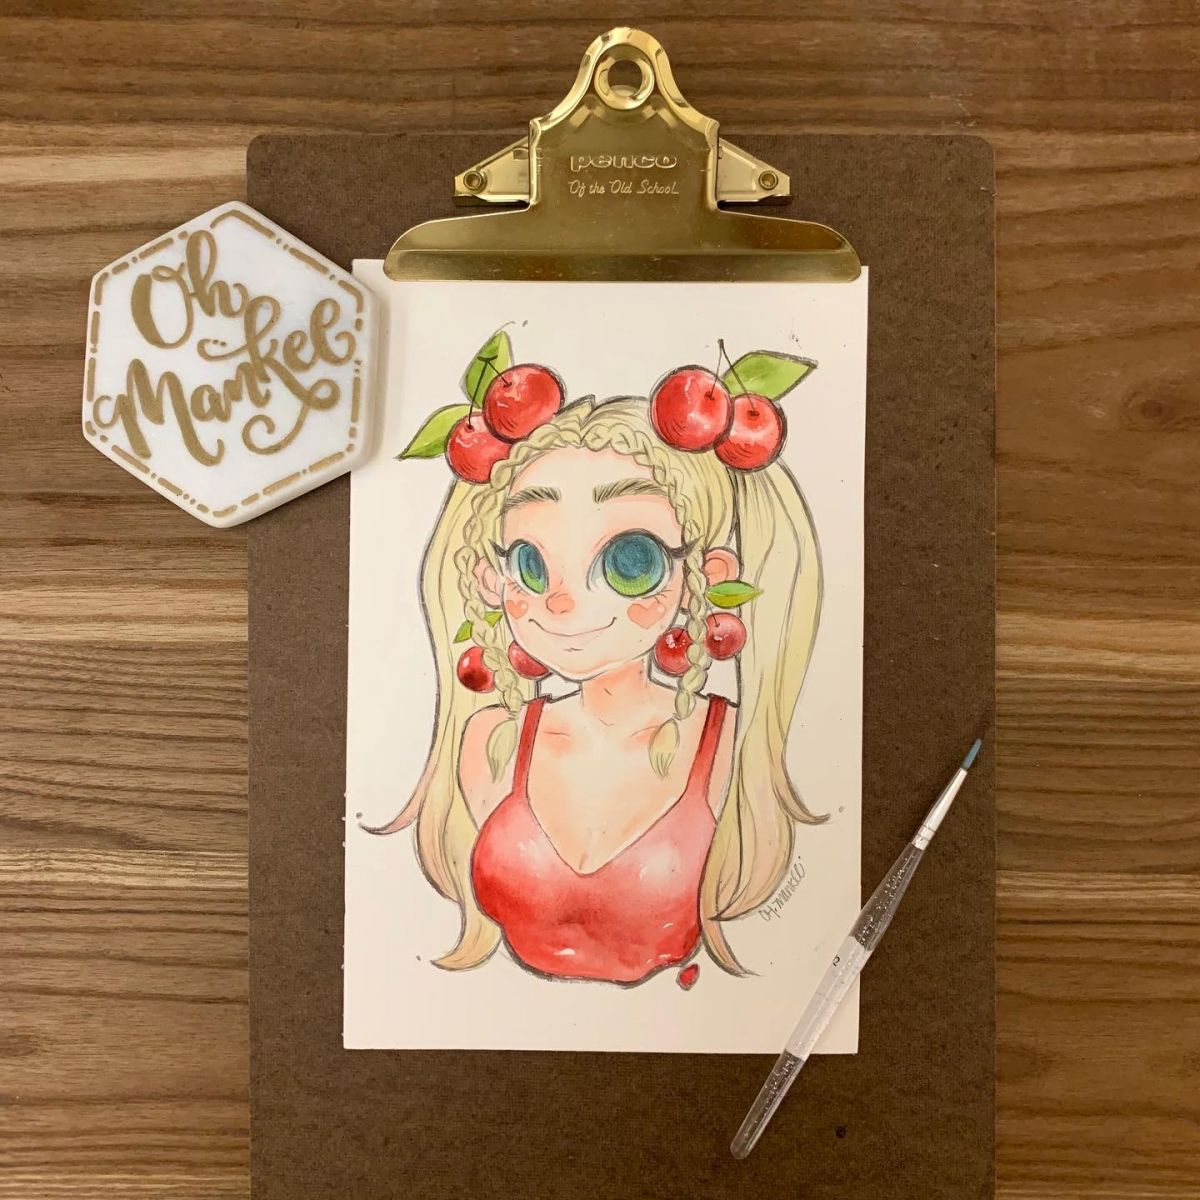 Watercolor Character ArtWatercolor Character Art 水彩角色插畫